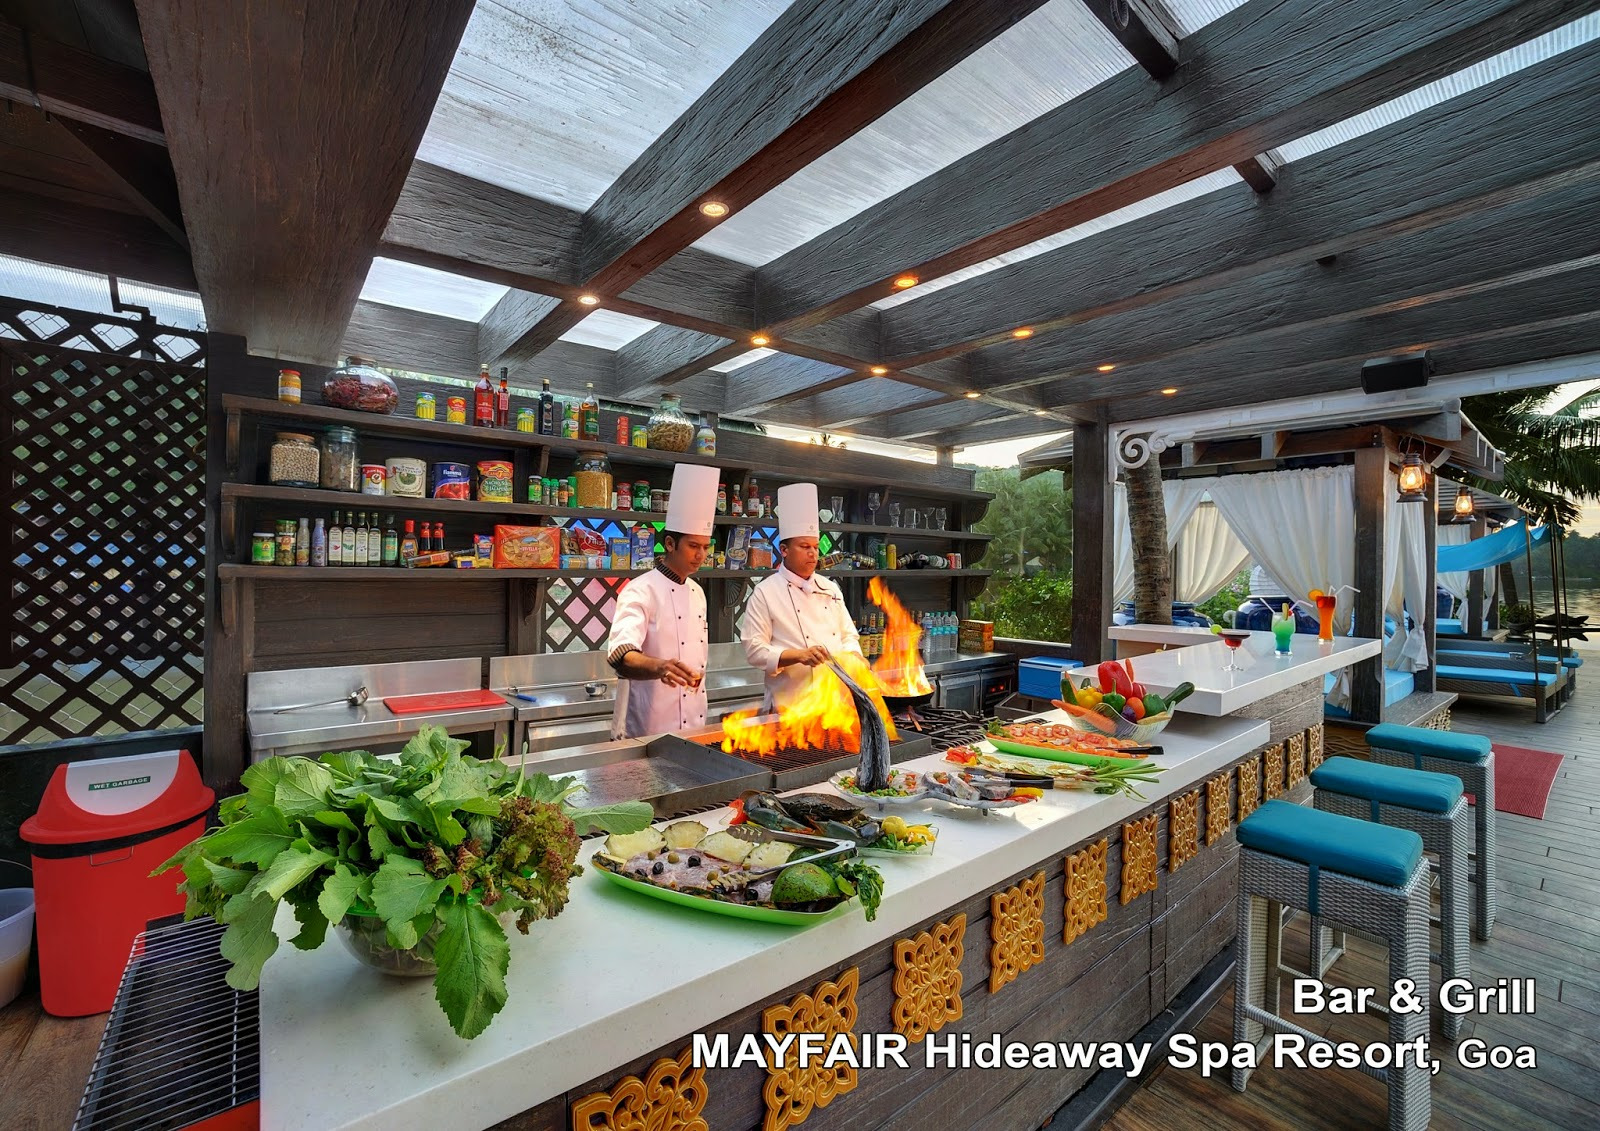 Mayfair Hideaway Spa Resort Bar & Grill